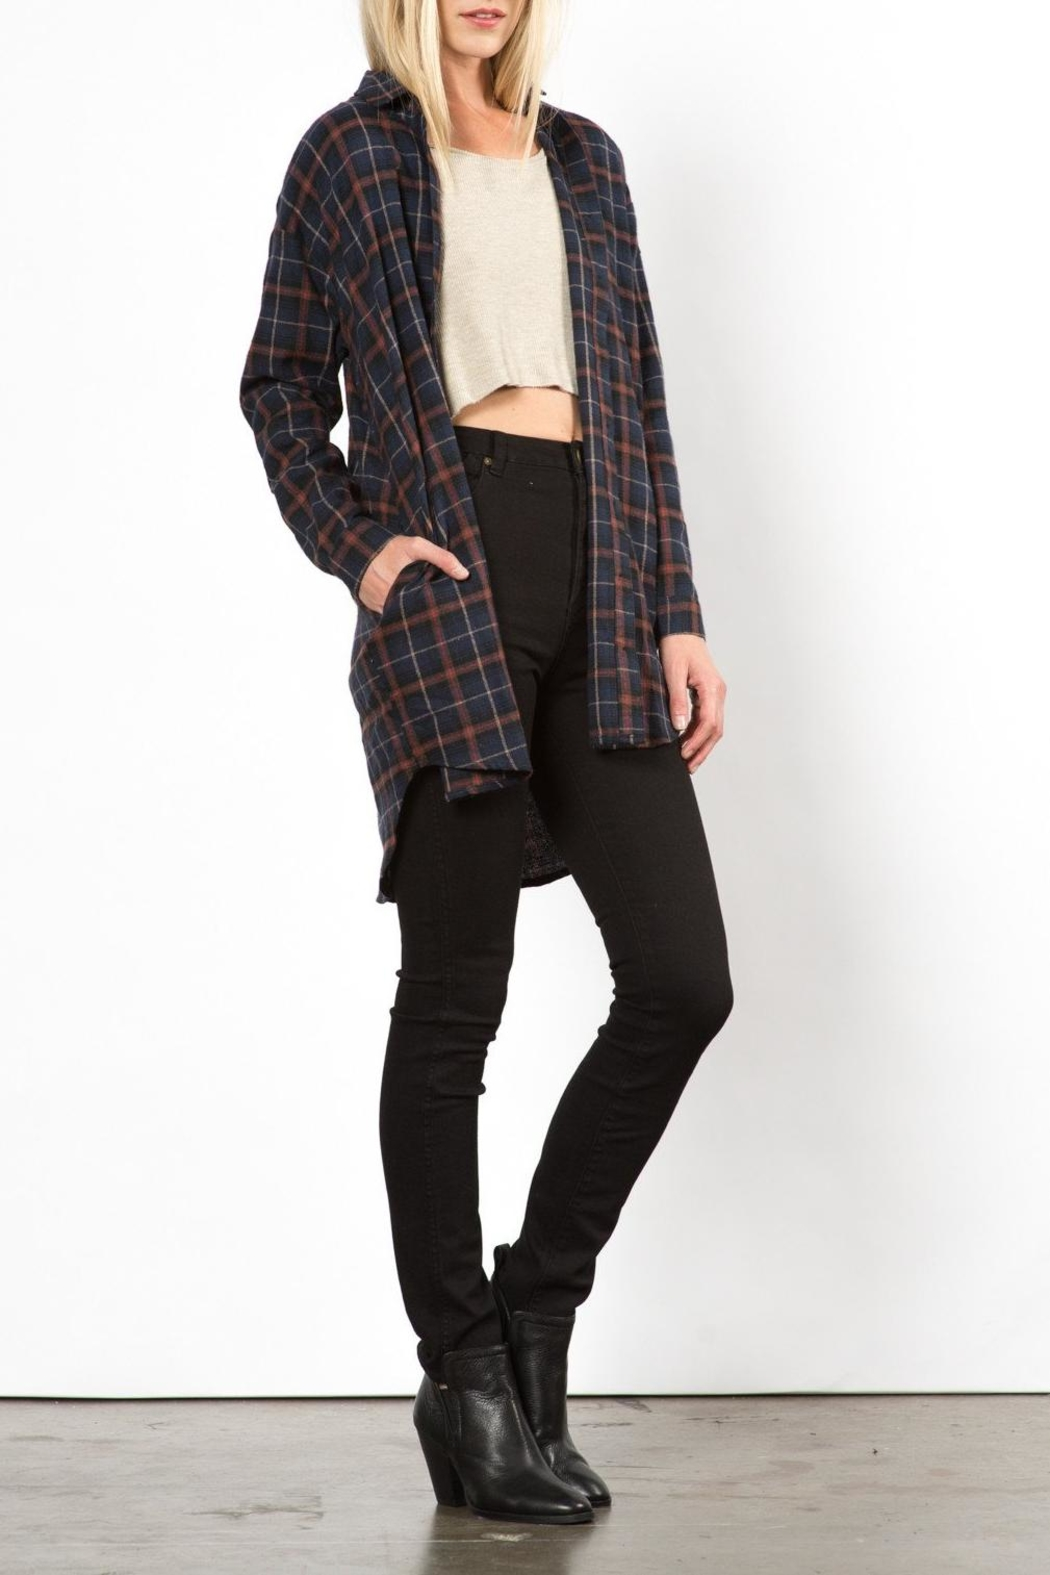 Very J Phoenix Plaid Top - Side Cropped Image